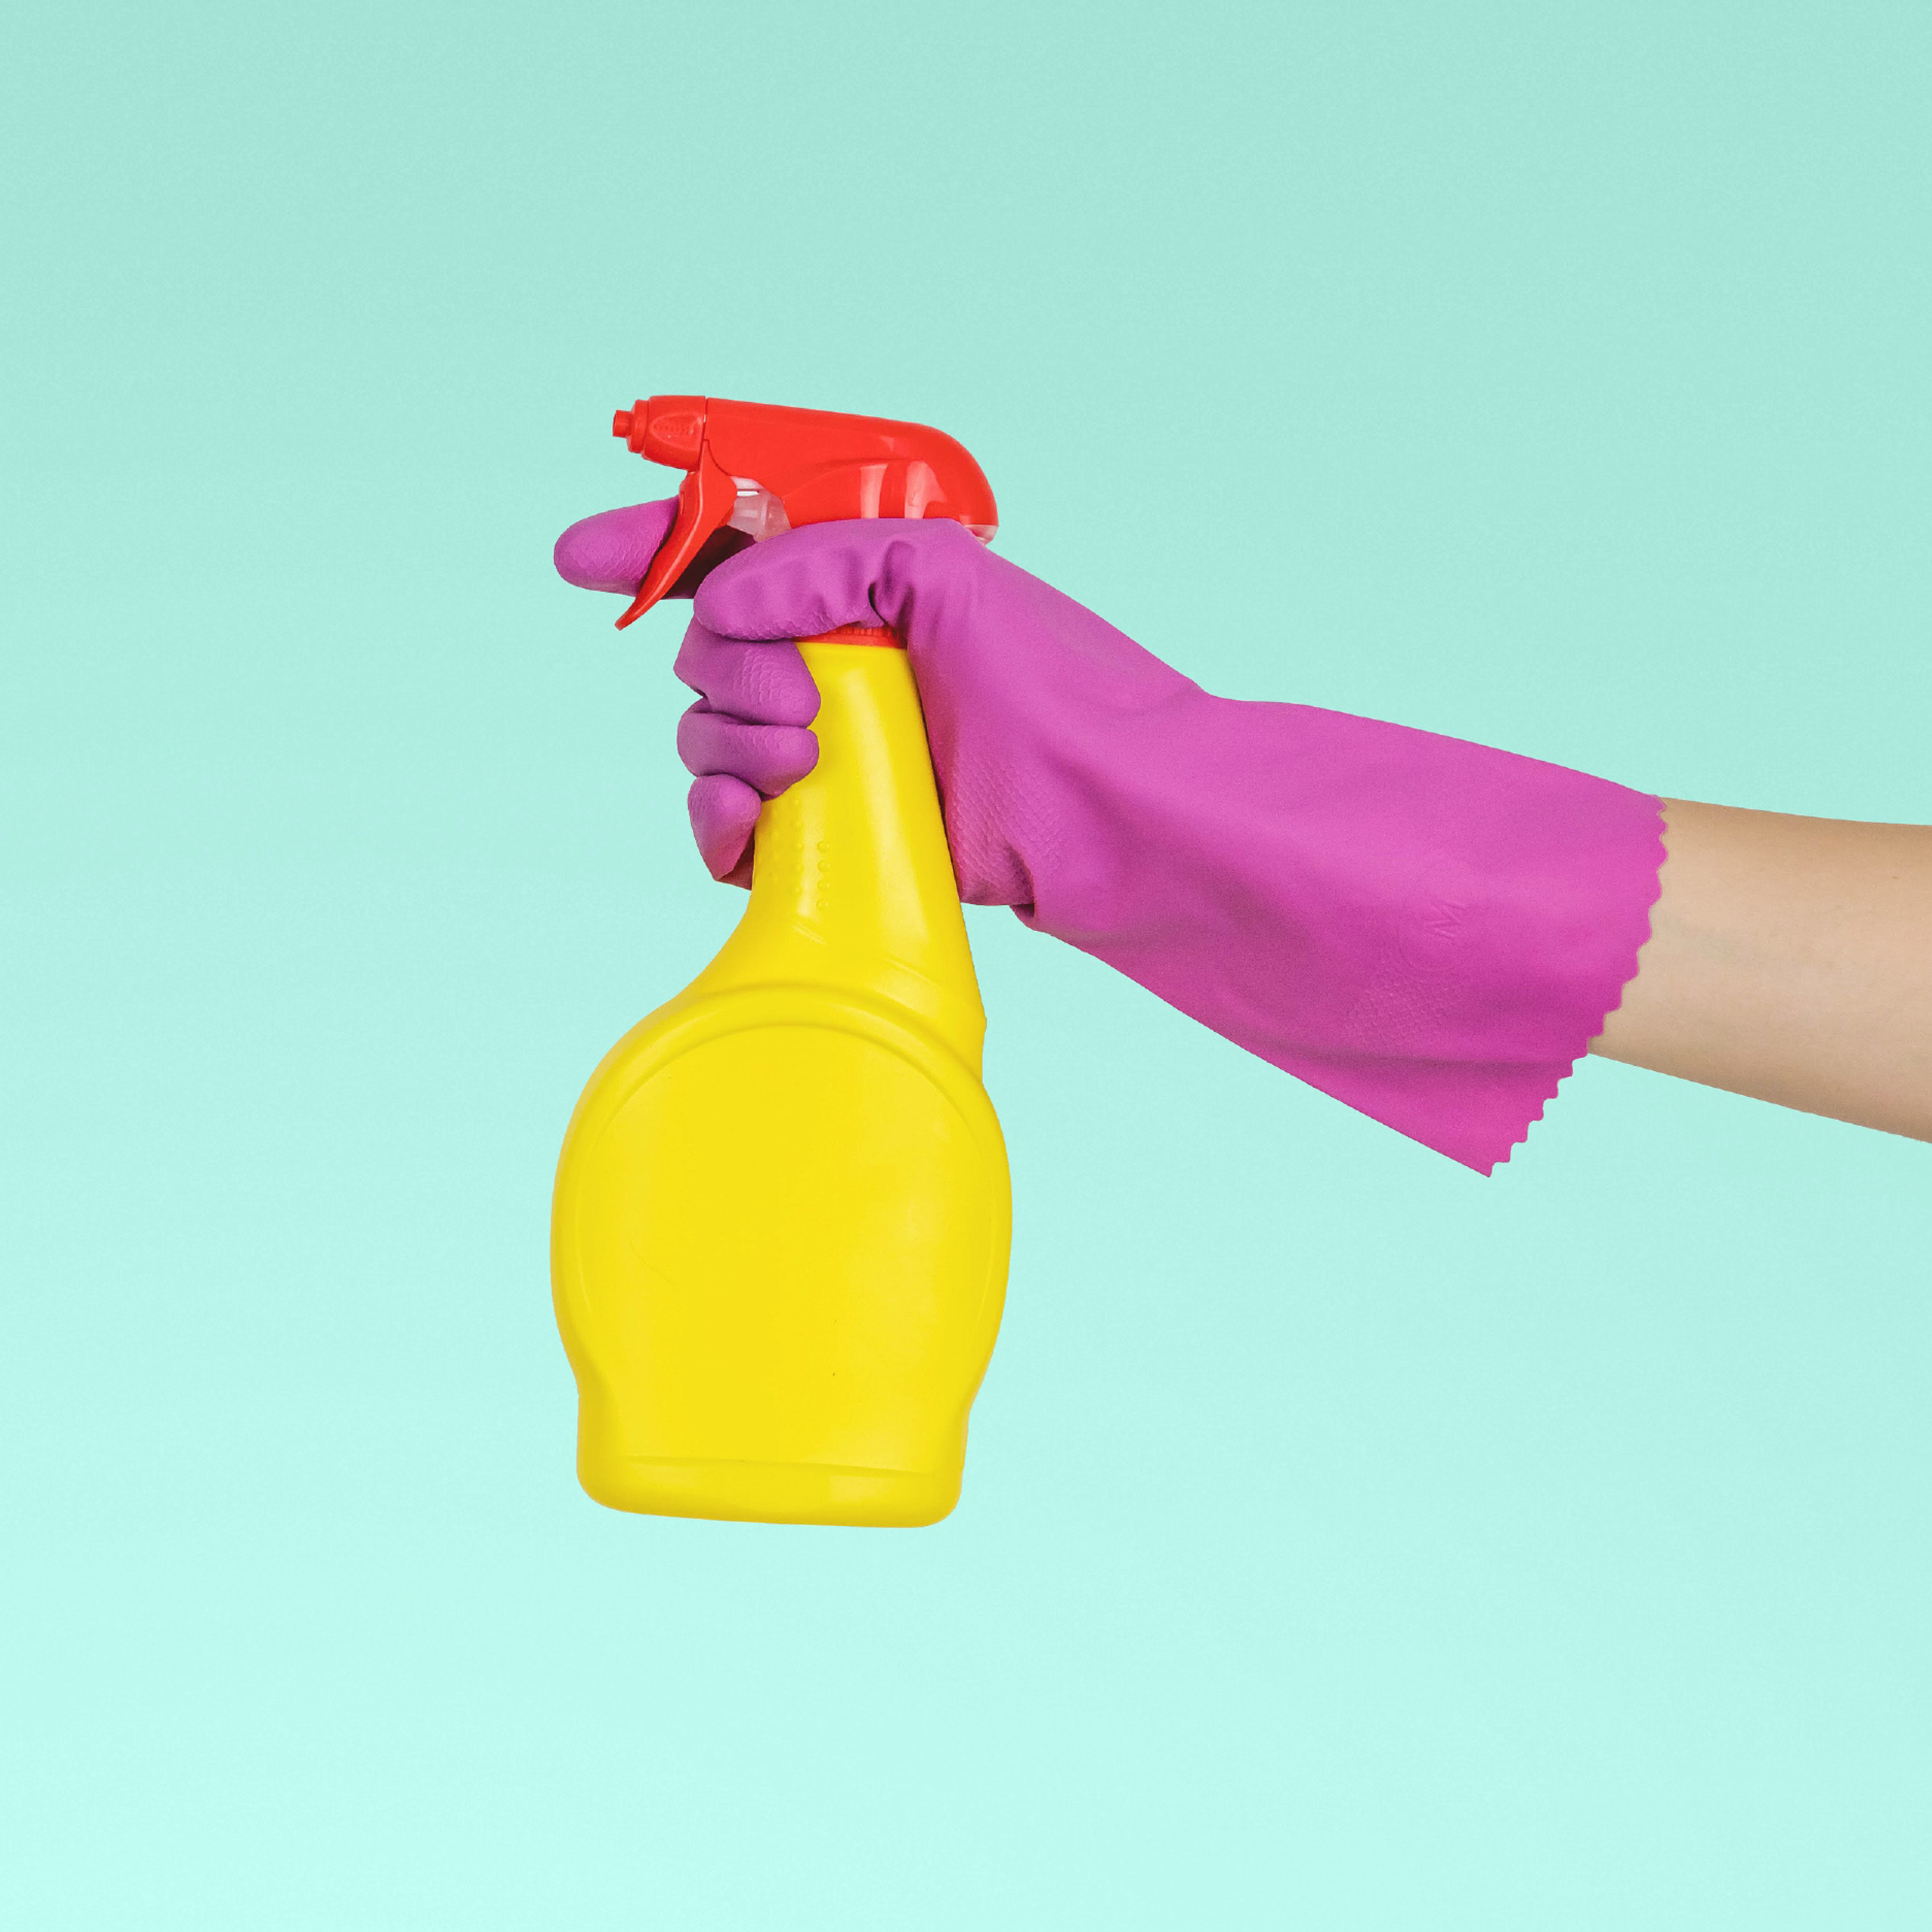 Spring Cleaning: Don't Overlook These 20 Items